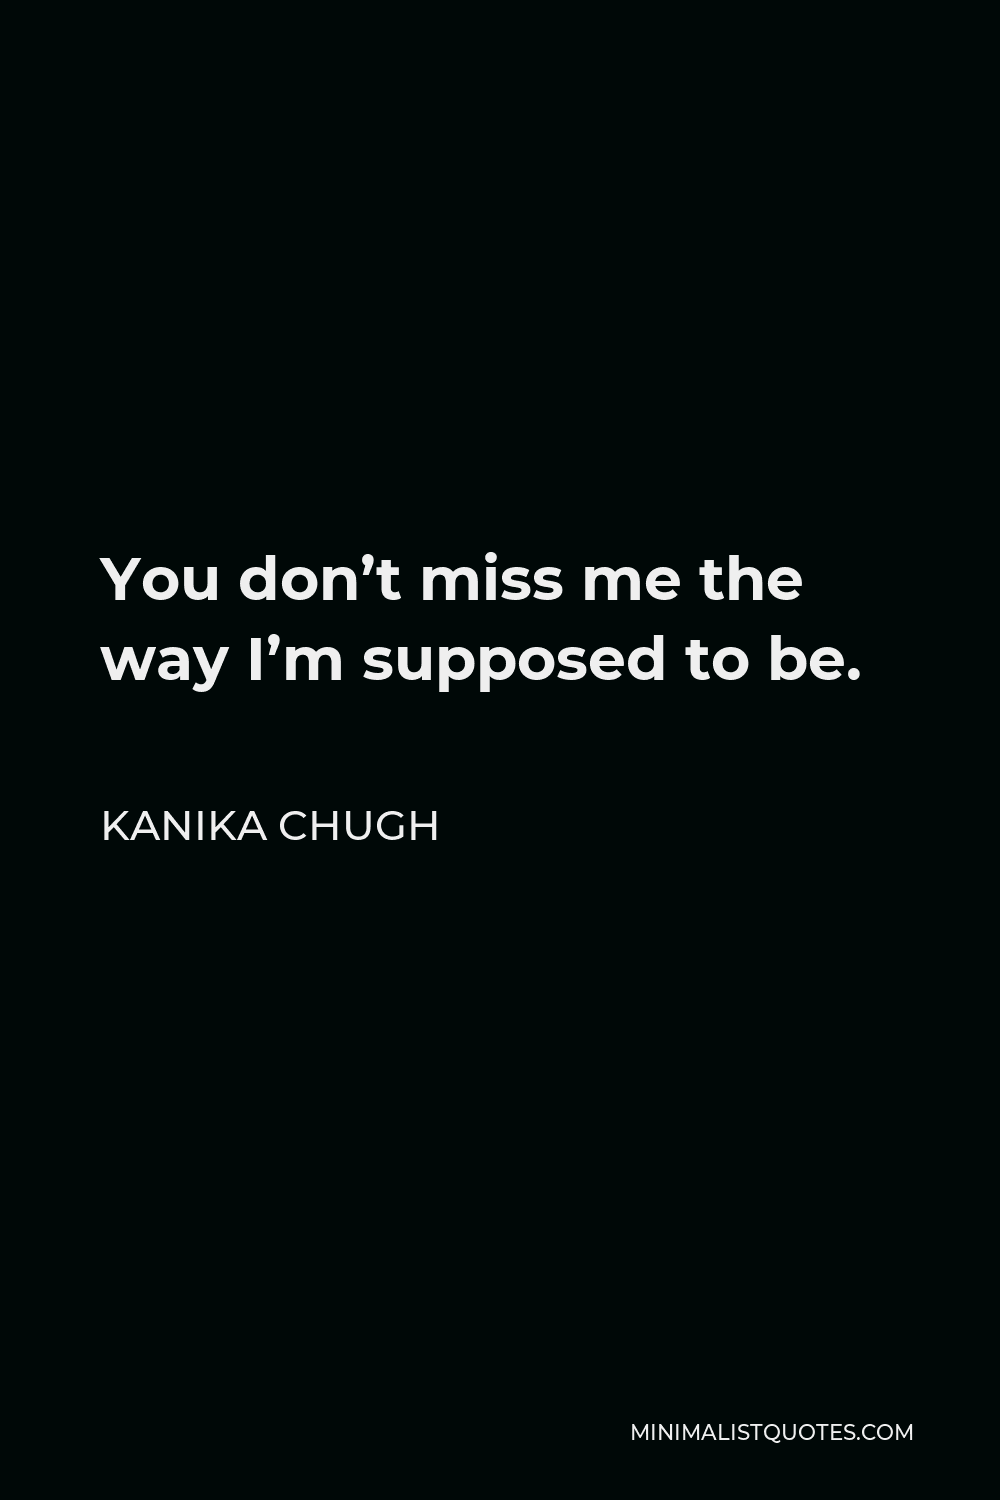 Kanika Chugh Quote - You don't miss me the way I'm supposed to be.